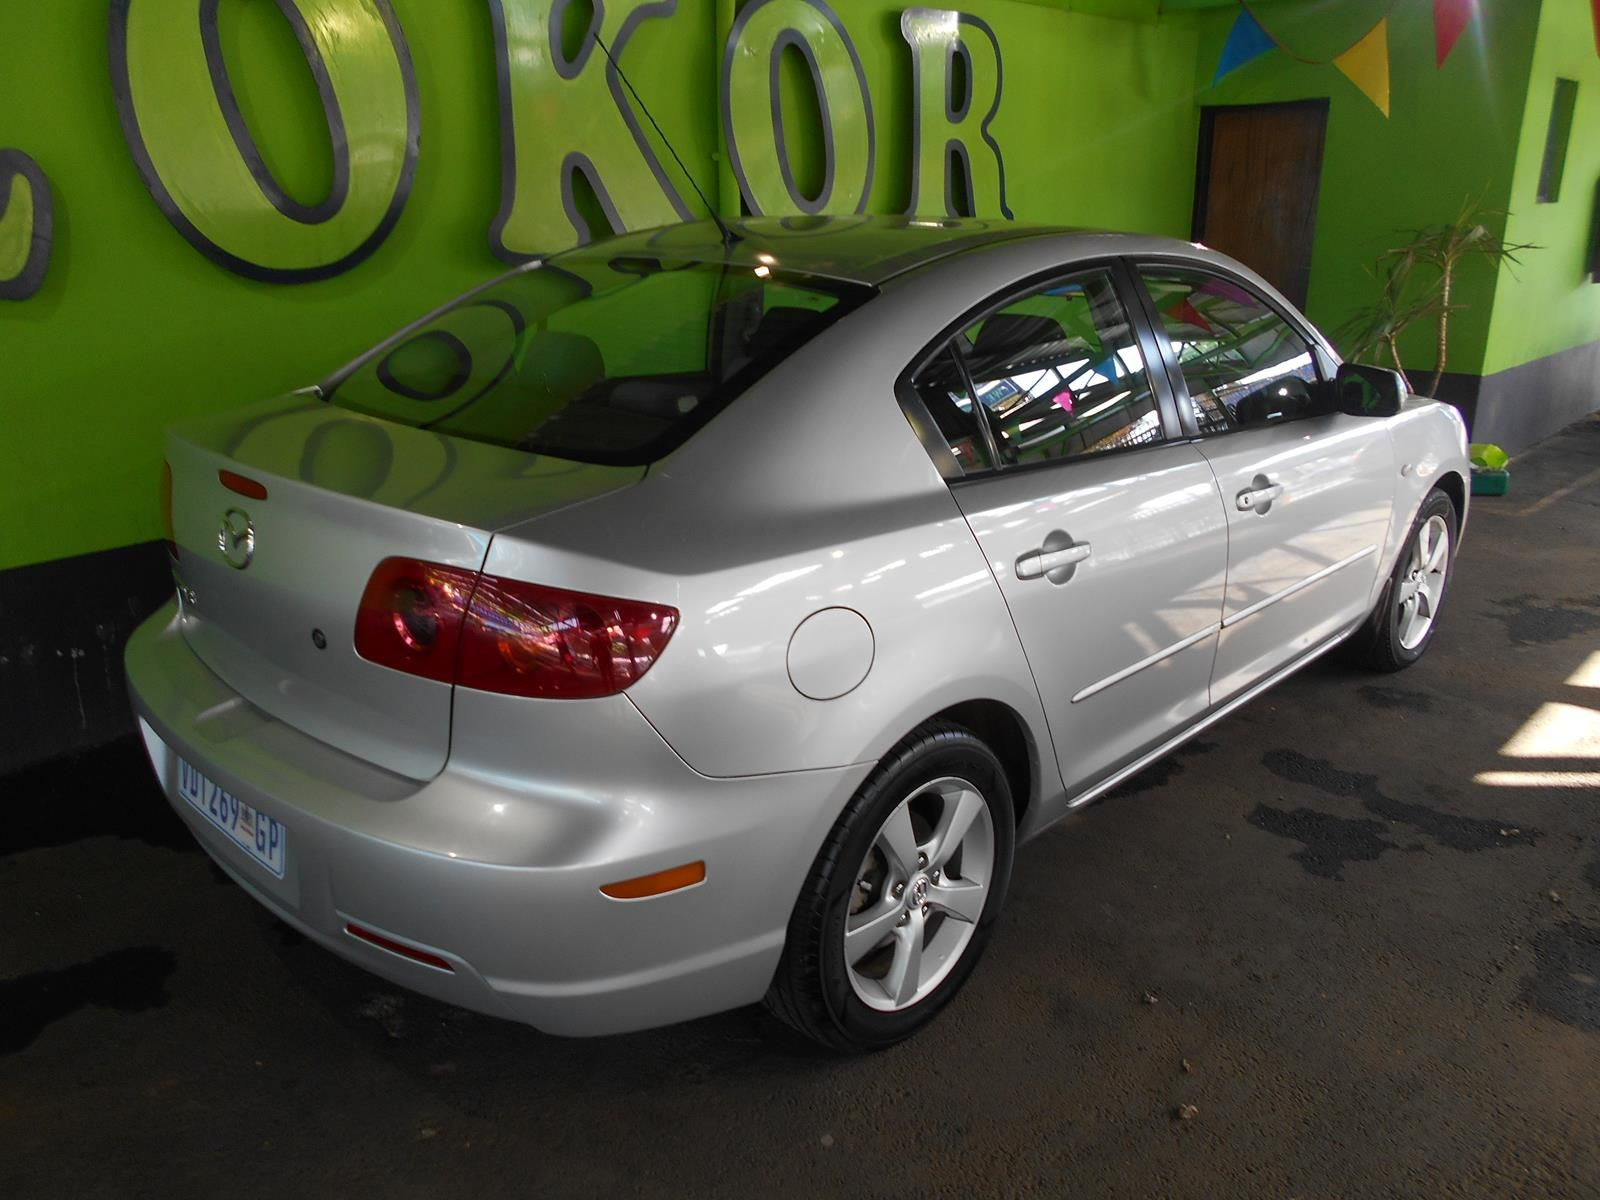 2006 Mazda 3 R 89 990 For Sale Kilokor Motors